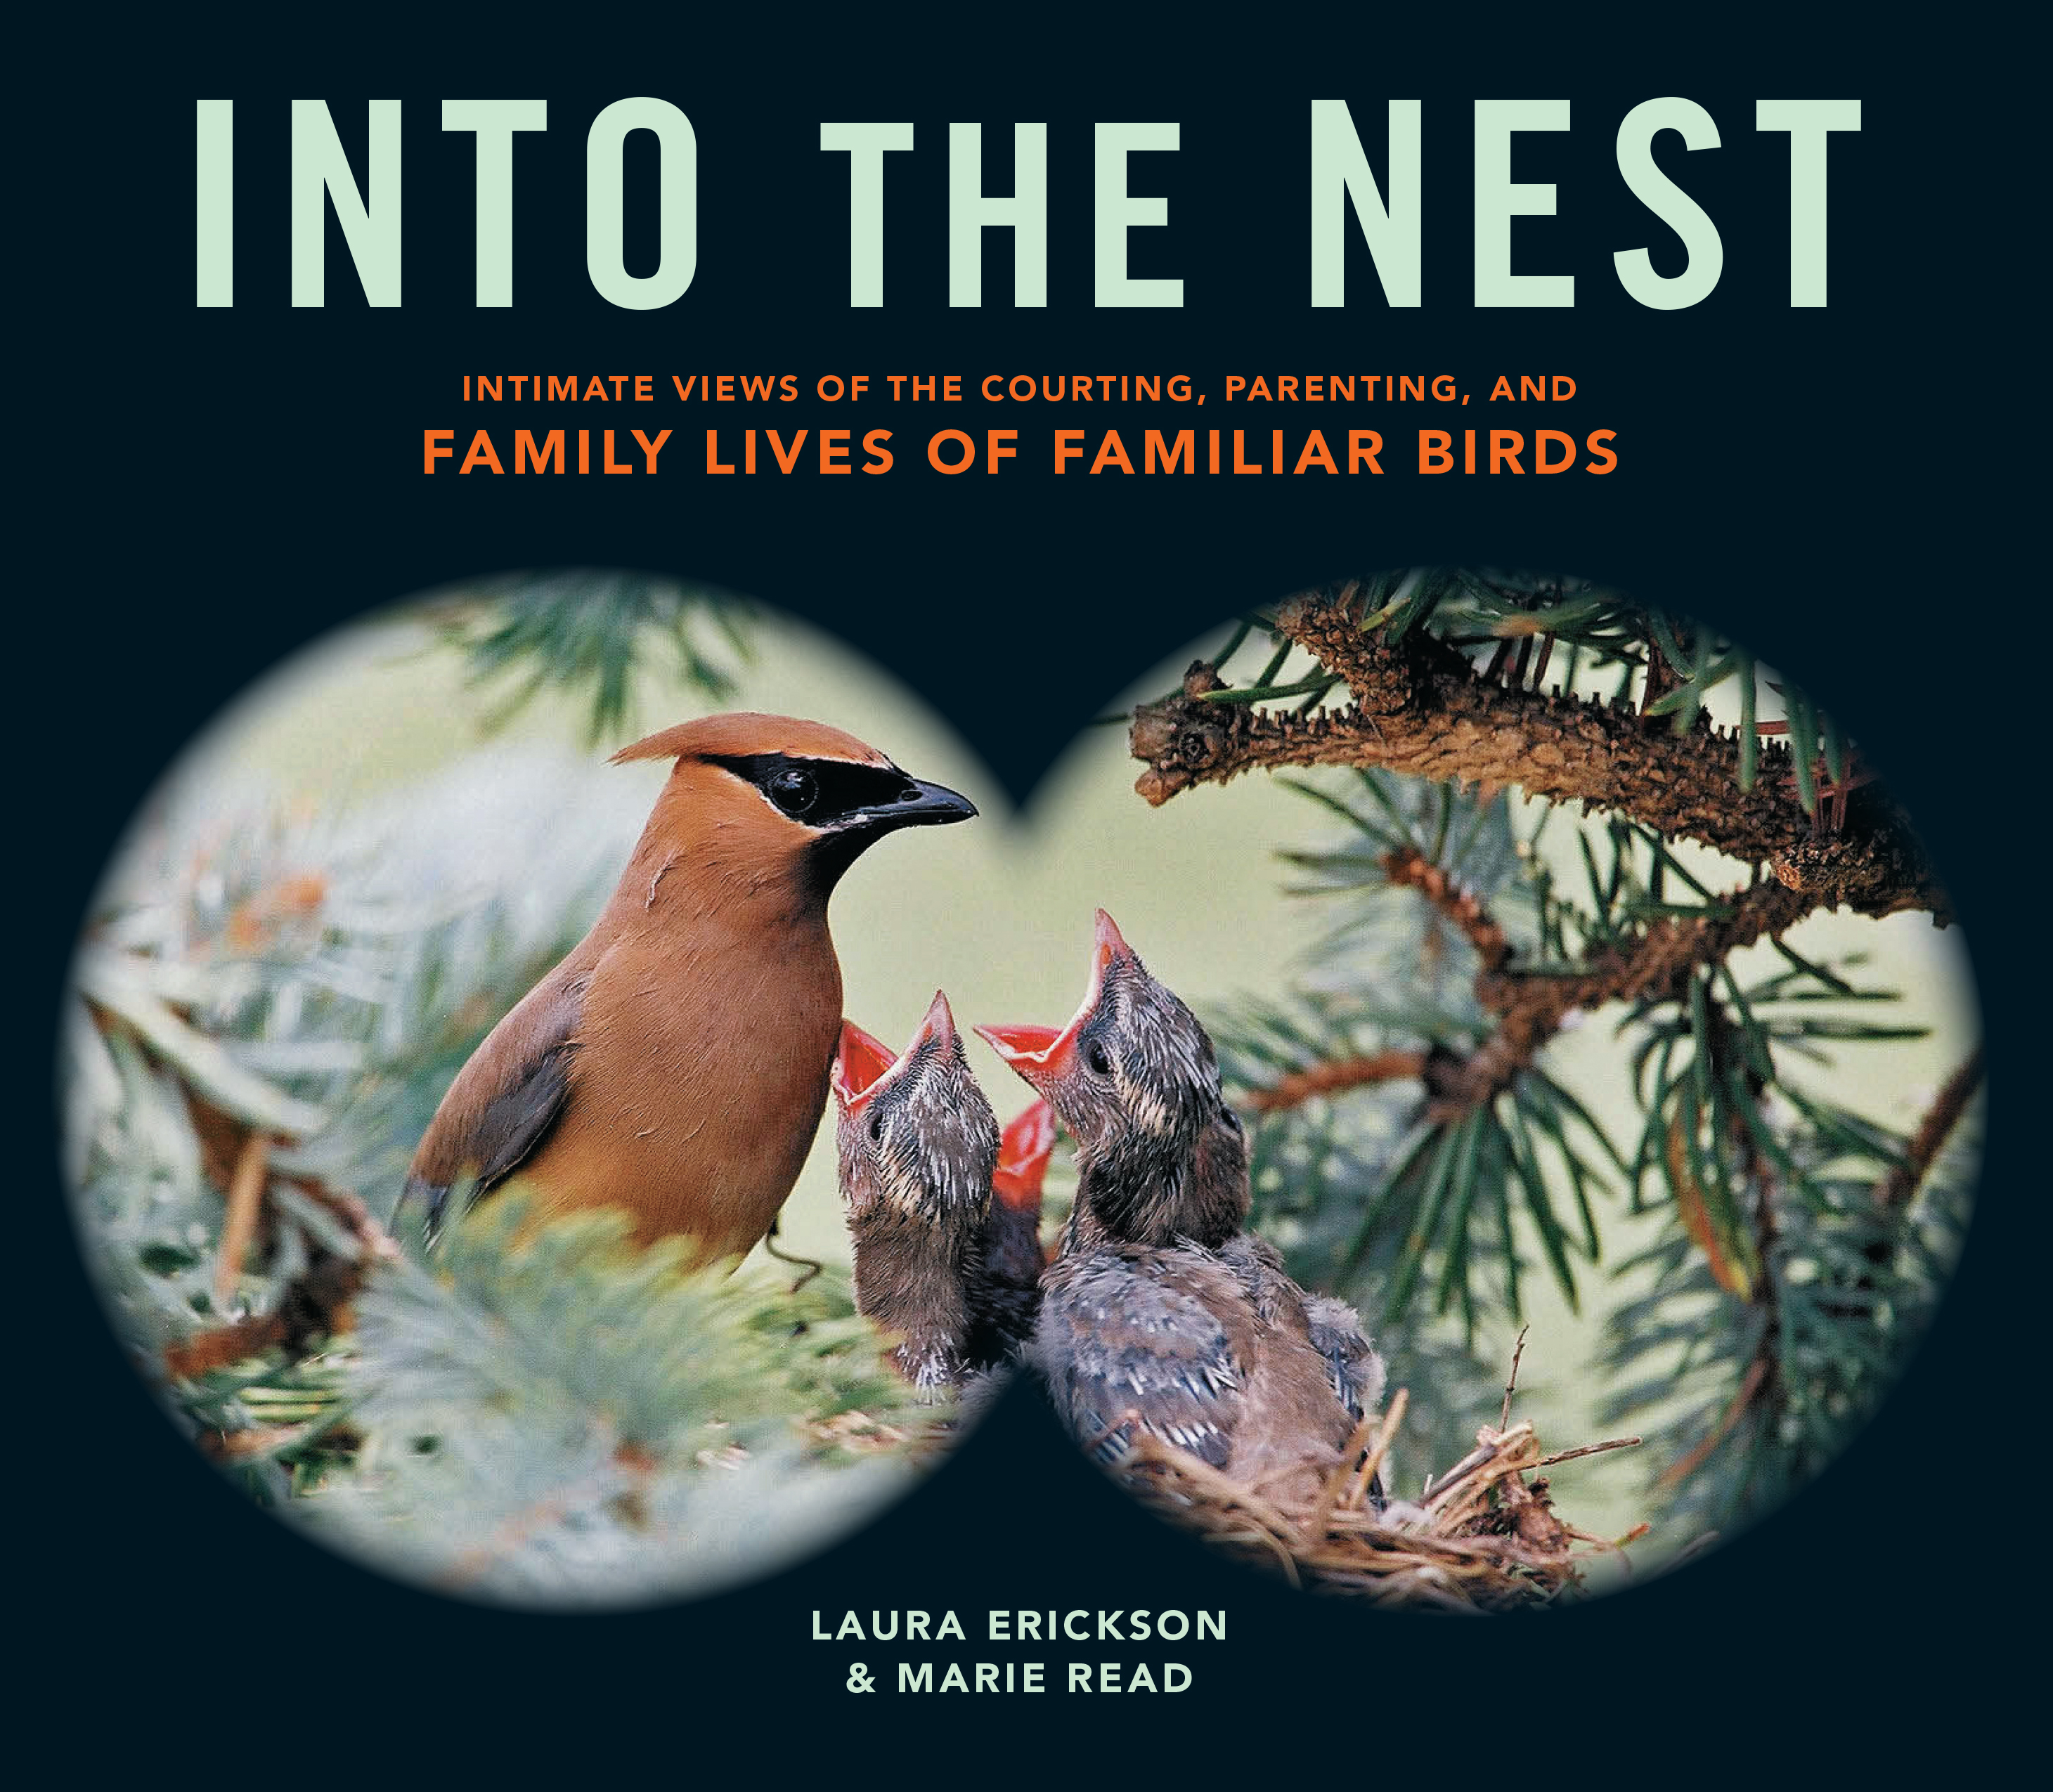 Into the Nest Intimate Views of the Courting, Parenting, and Family Lives of Familiar Birds - Laura Erickson